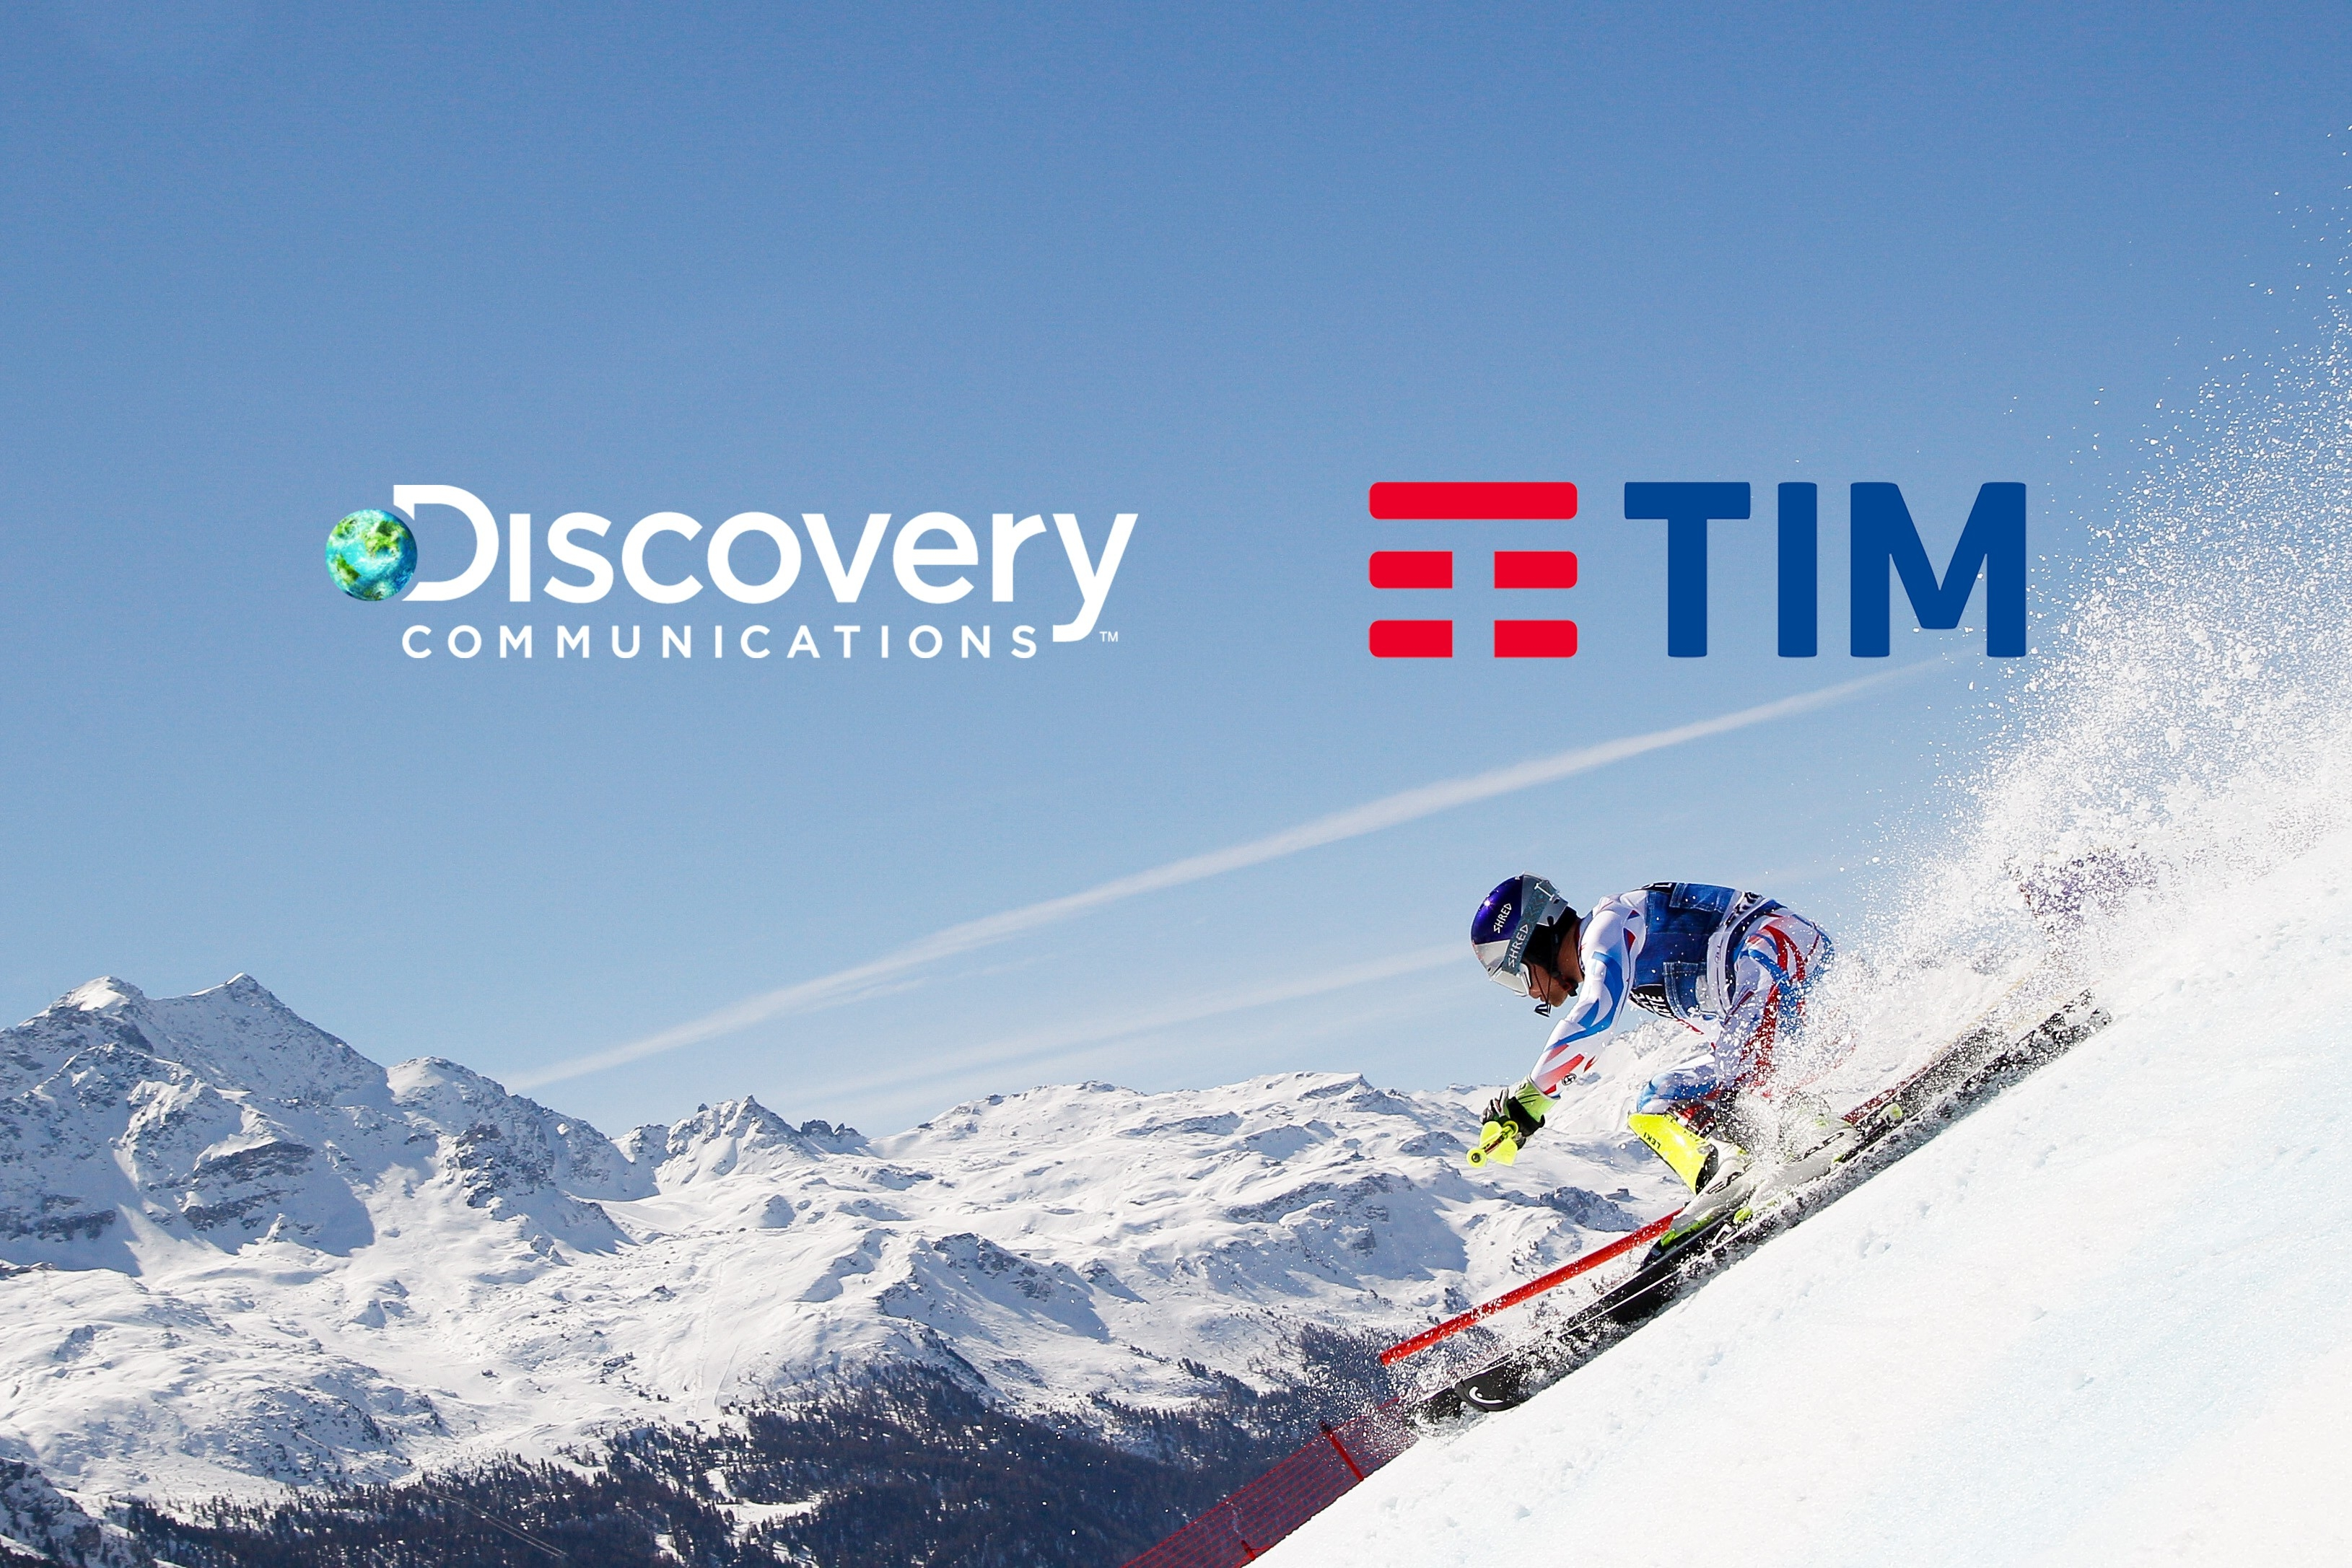 Immagine-TIM-Discovery